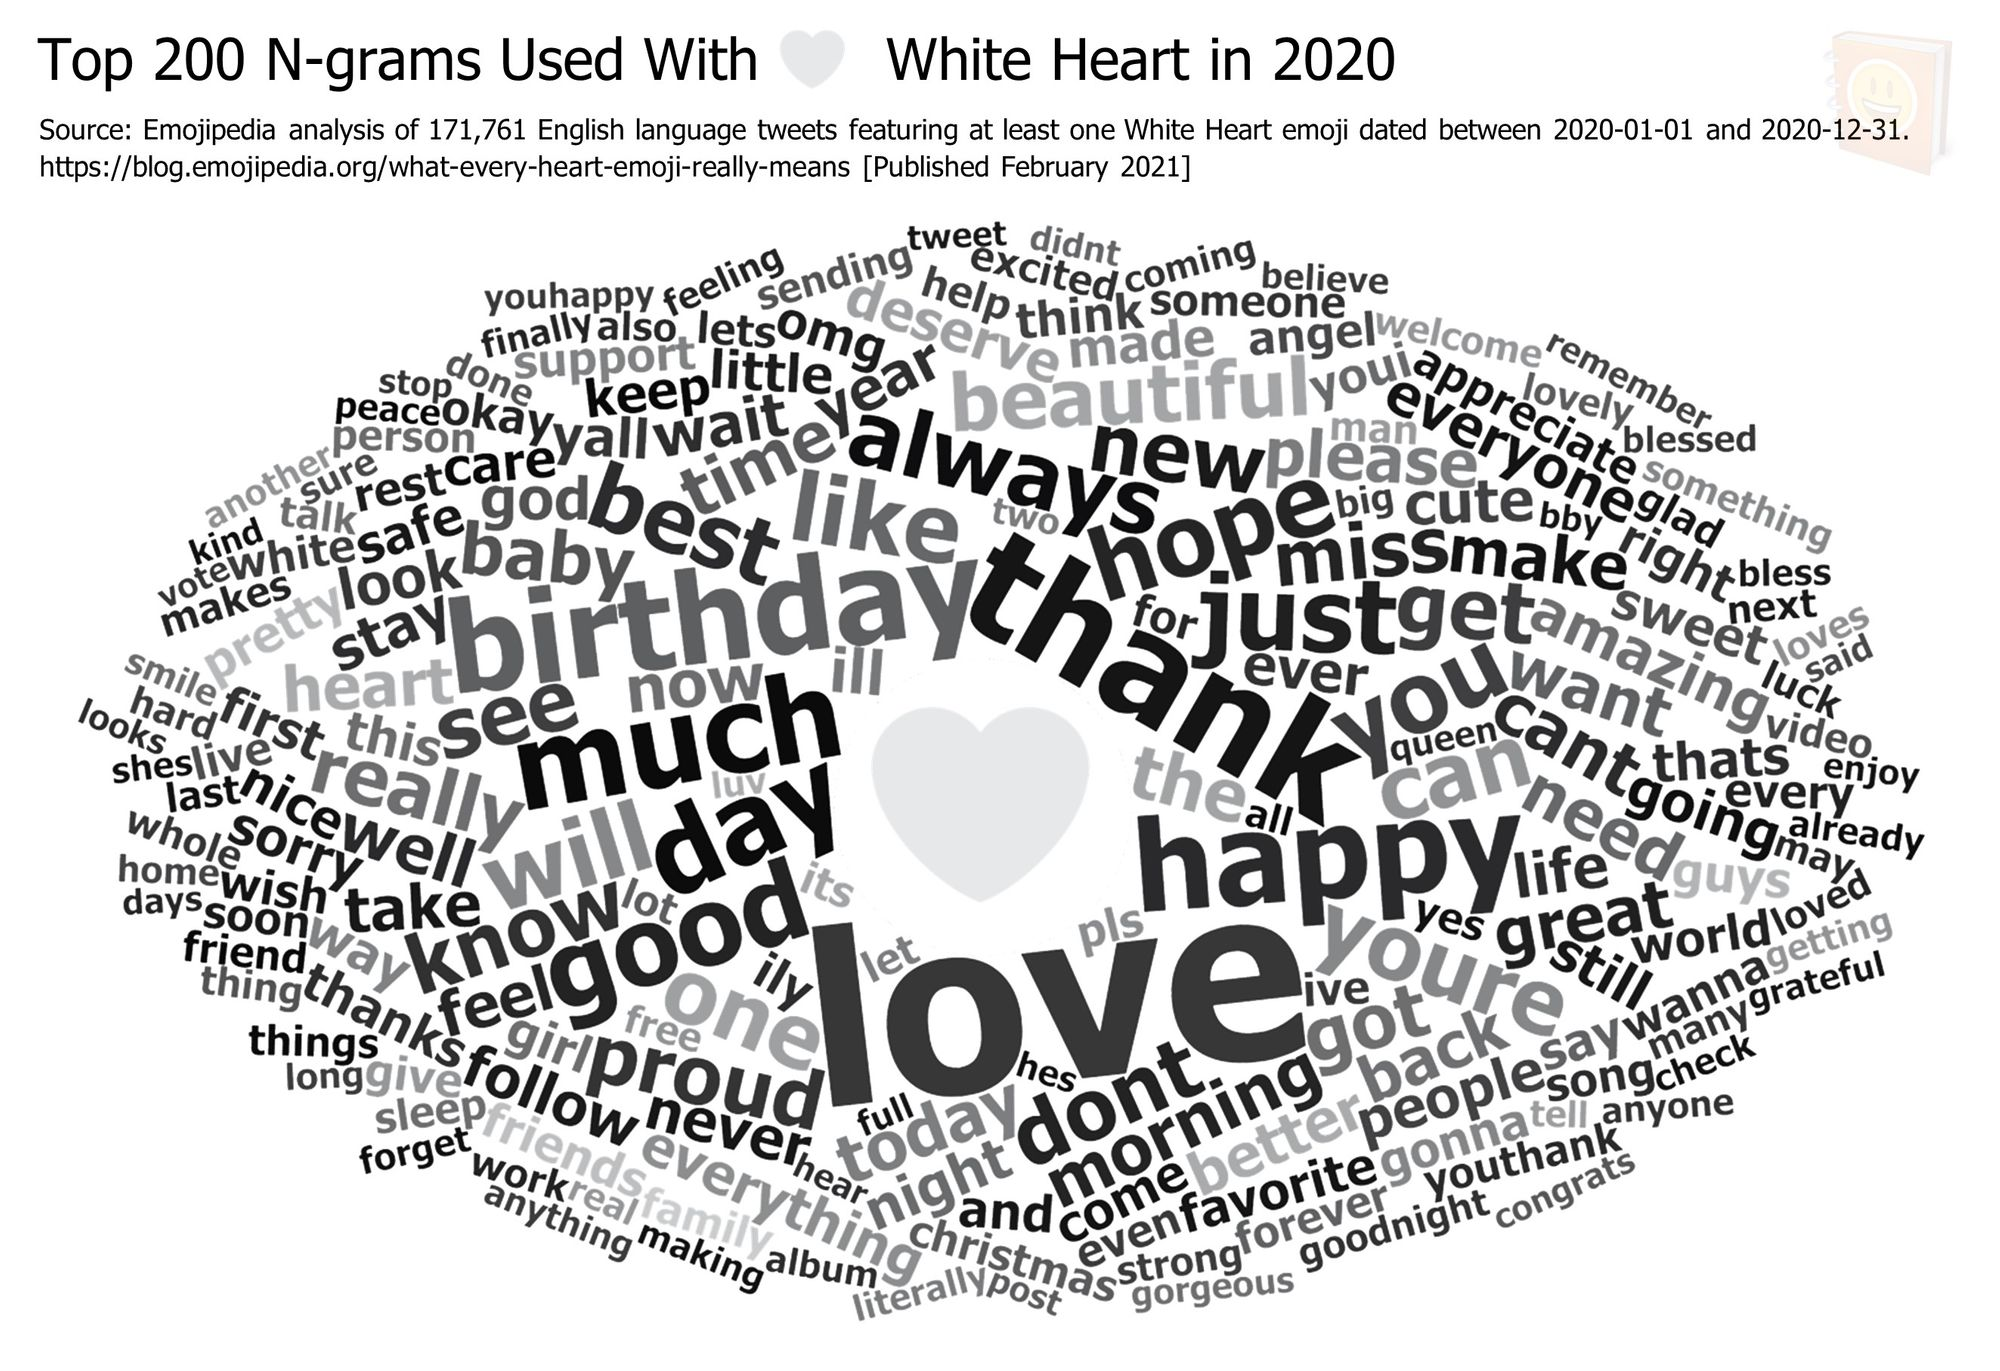 Emojipedia-Blog---What-Every-Heart-Emoji-Really-Means---Top-200-N-grams-Used-With-------White-Heart-in-2020